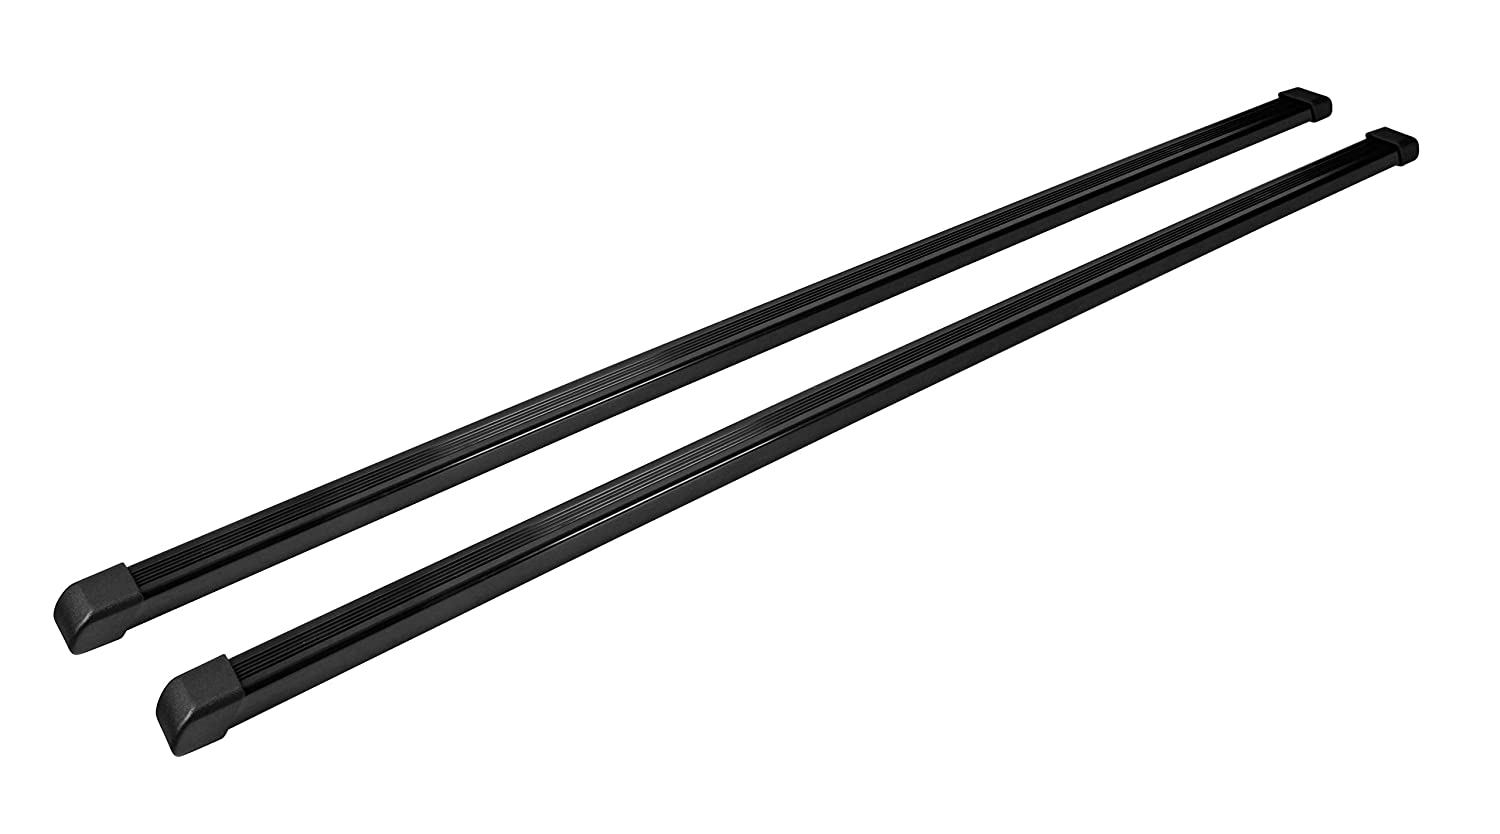 Lockable Nordrive Roof Bars for BMW 5 Series 1995-2003 E39